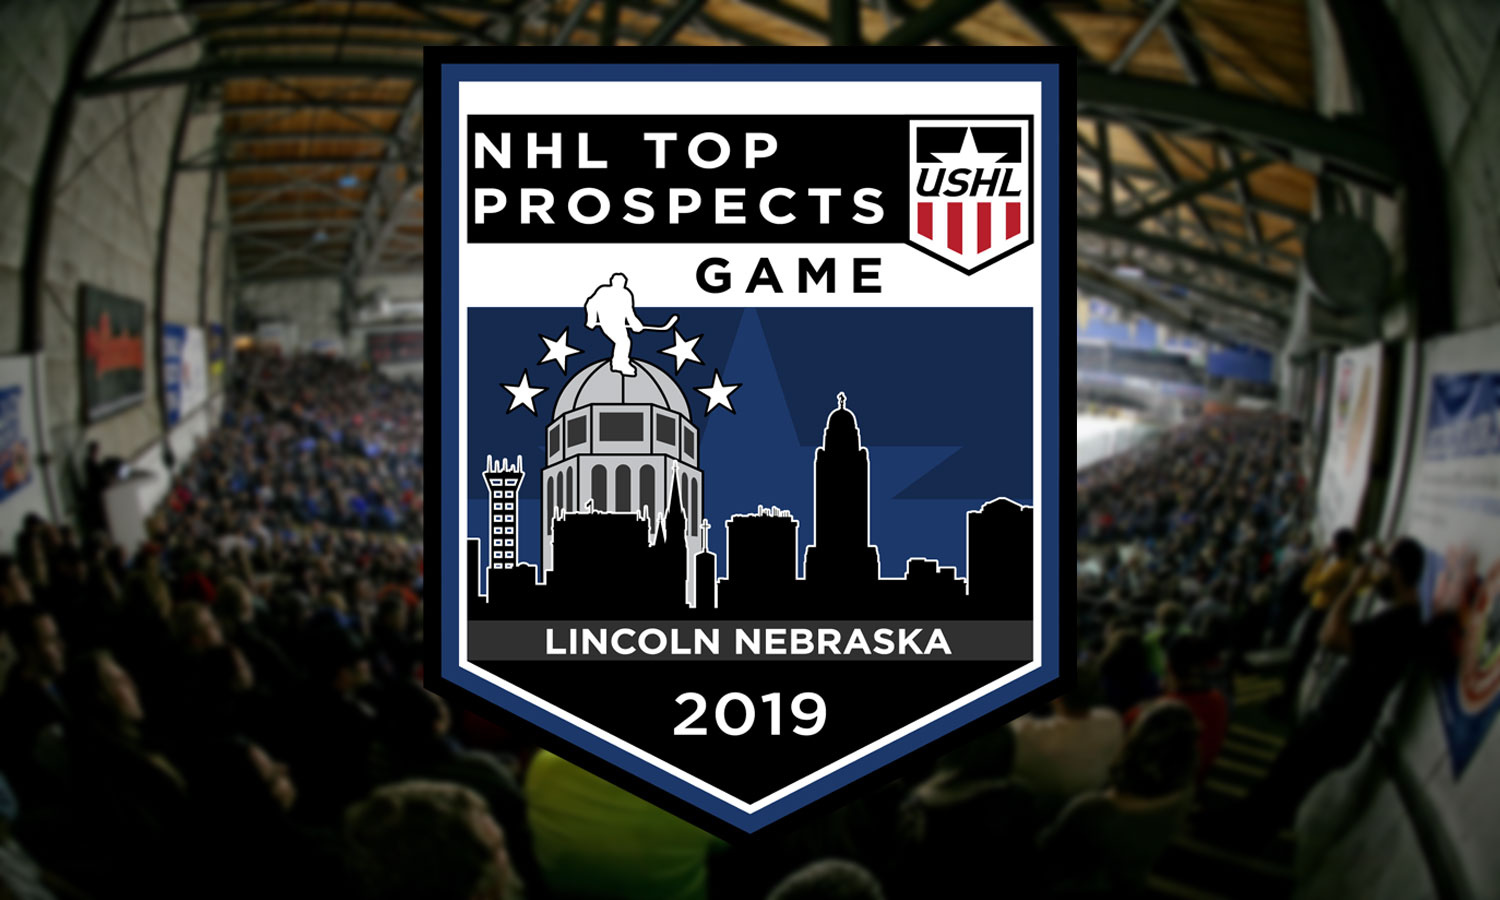 USHL: 2019 USHL/NHL Top Prospects Game Rosters Announced